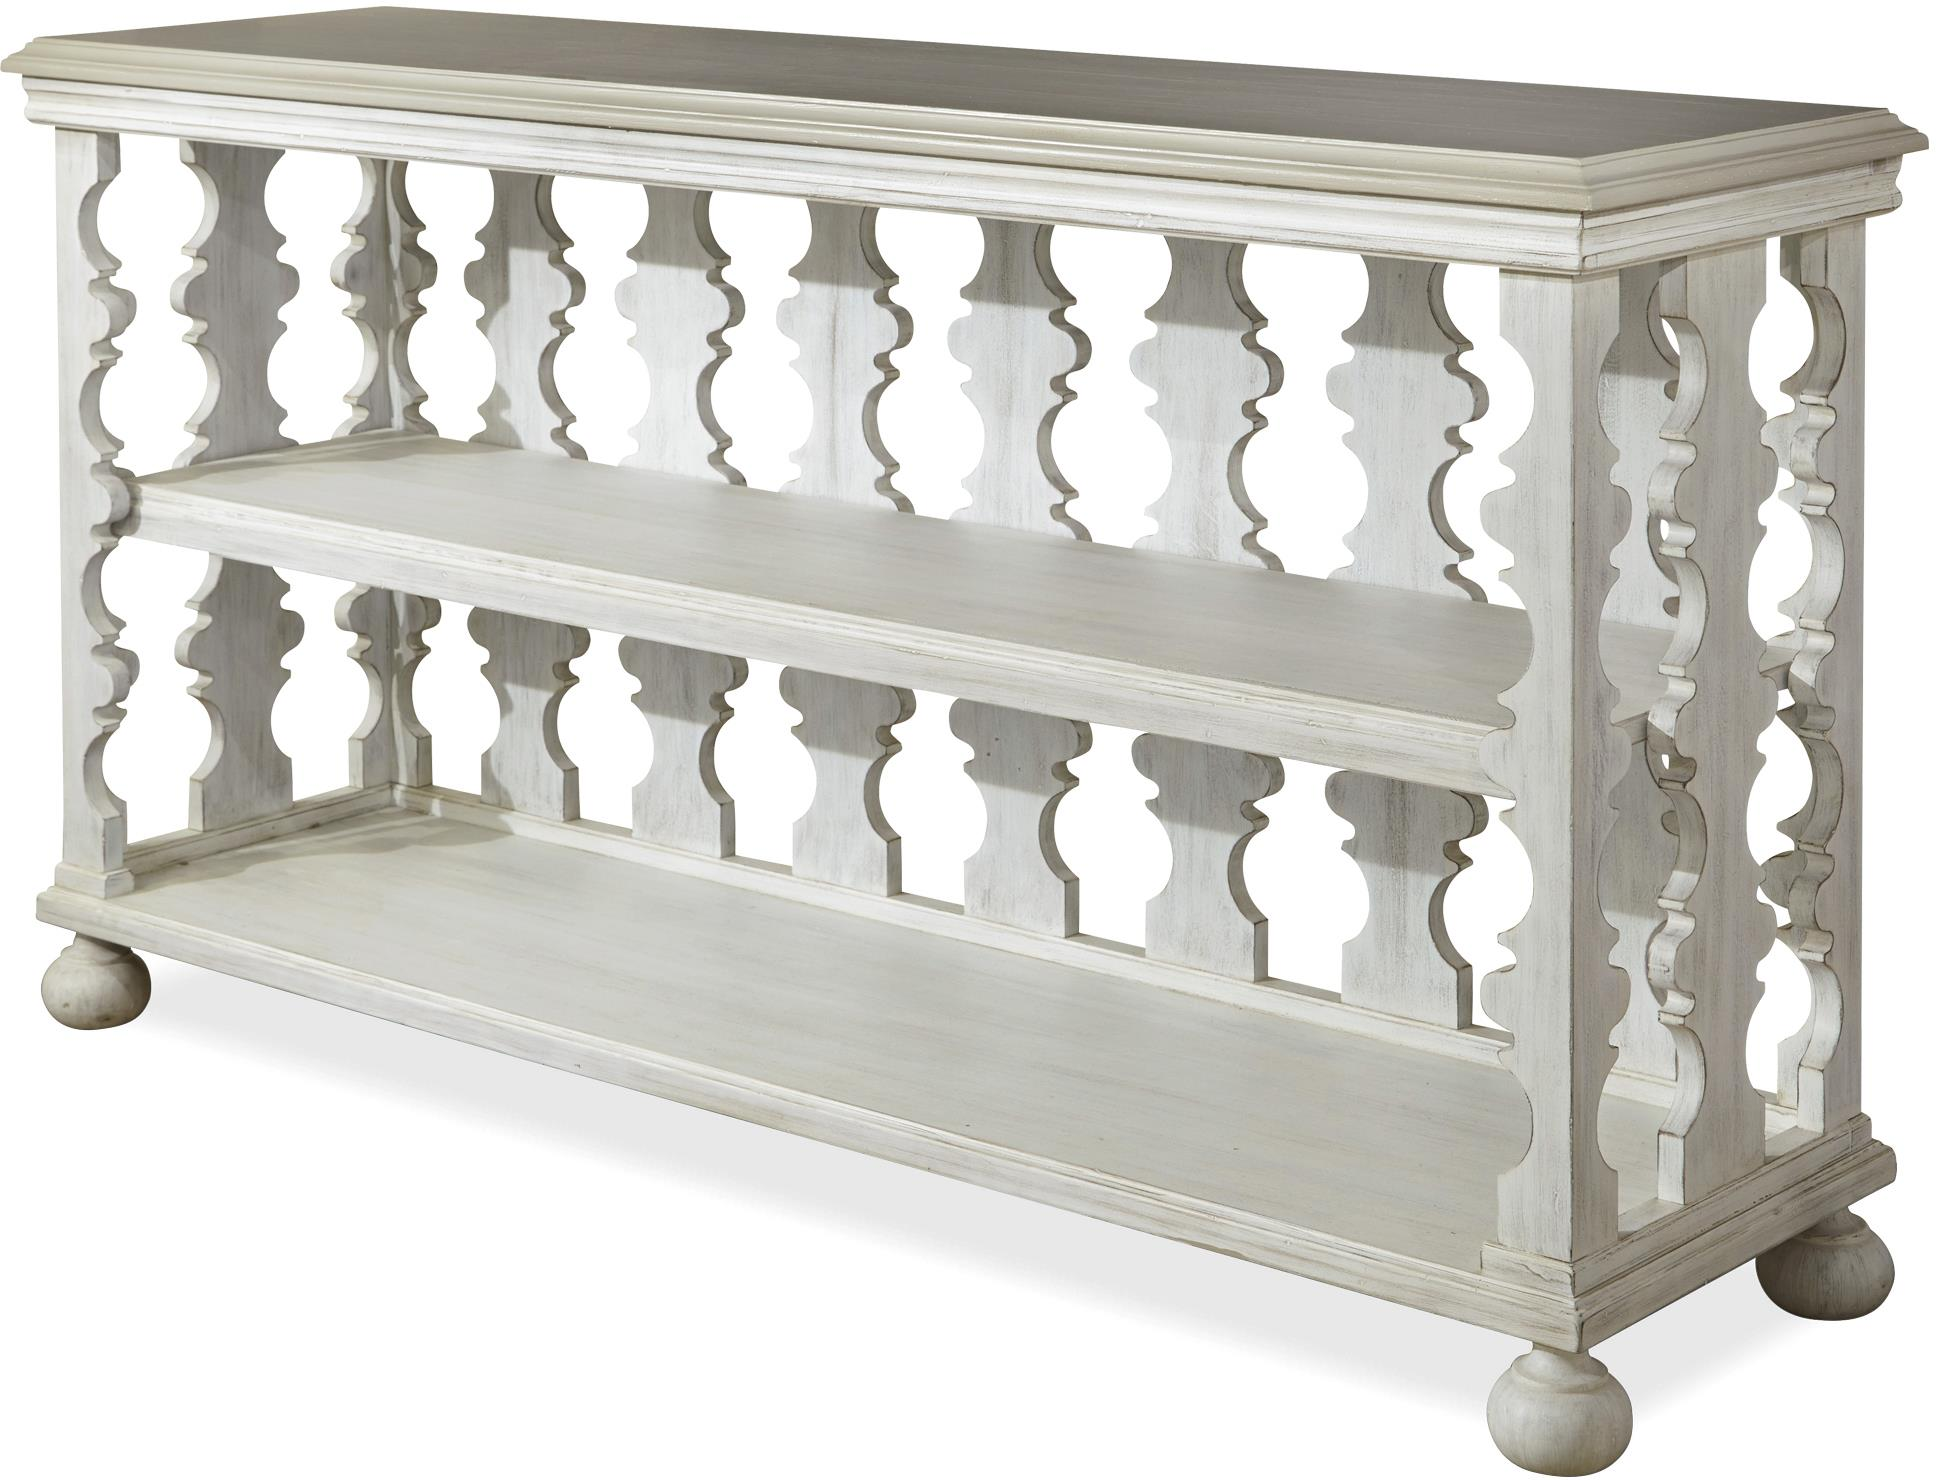 Paula Deen by Universal Dogwood Side Porch Console - Item Number: 597B816